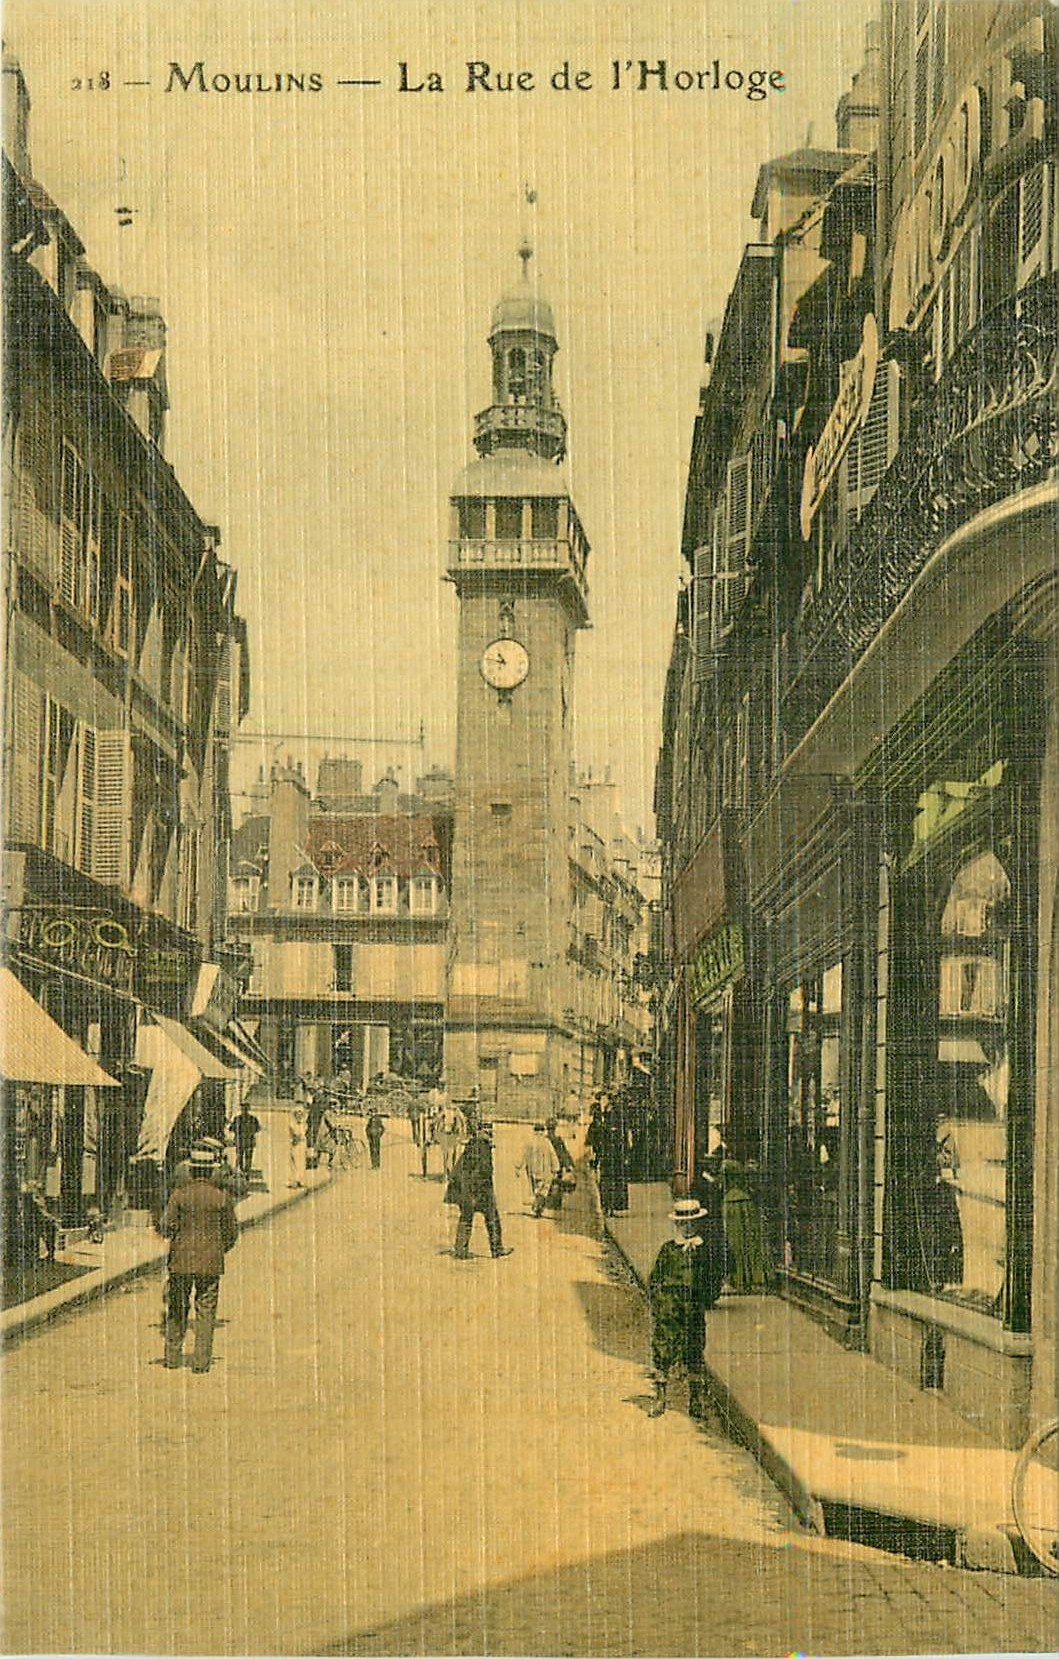 WW 03 MOULINS. Rue de l'Horrloge. Carte postale ancienne toilée